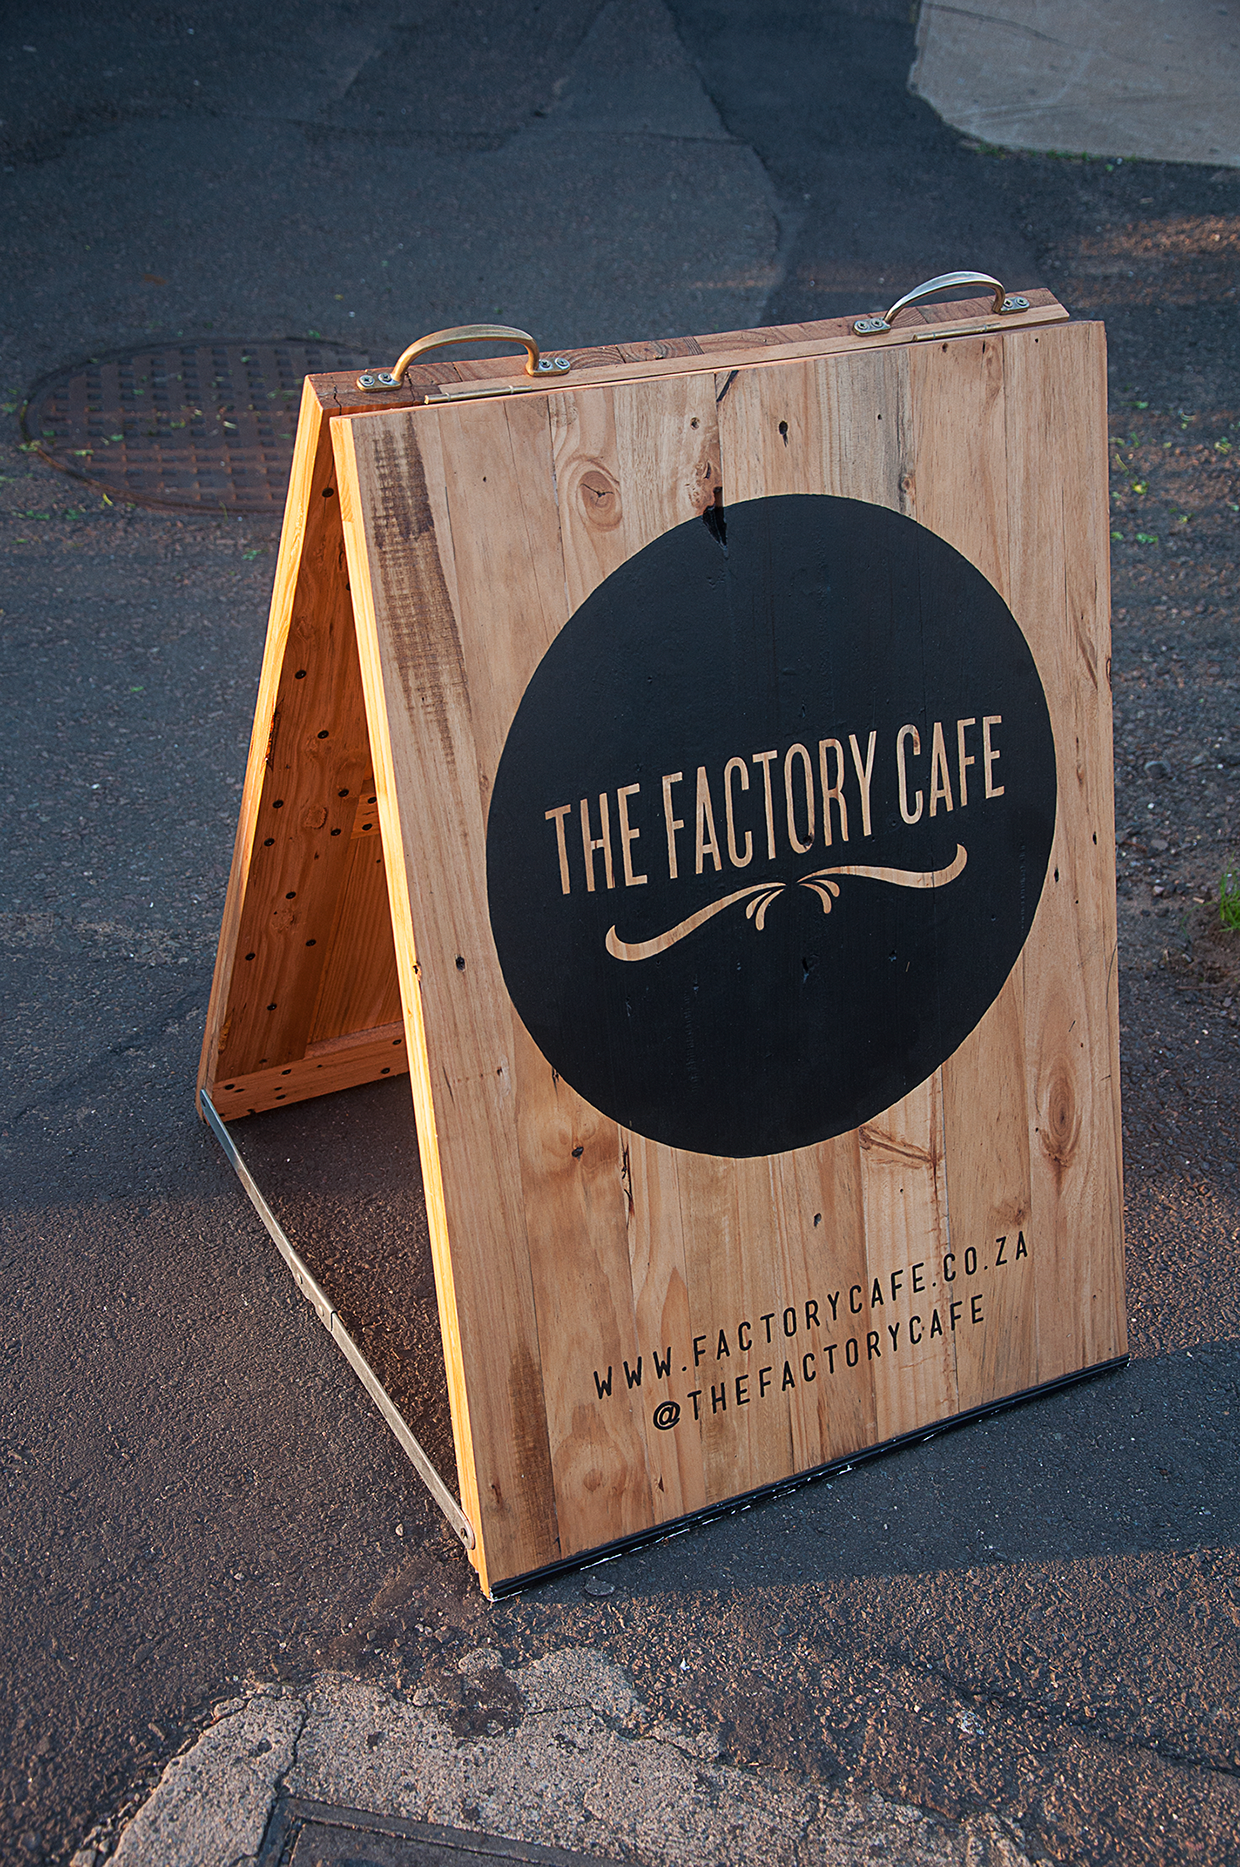 Street signage branding for a local coffee shop where i live durban south africa